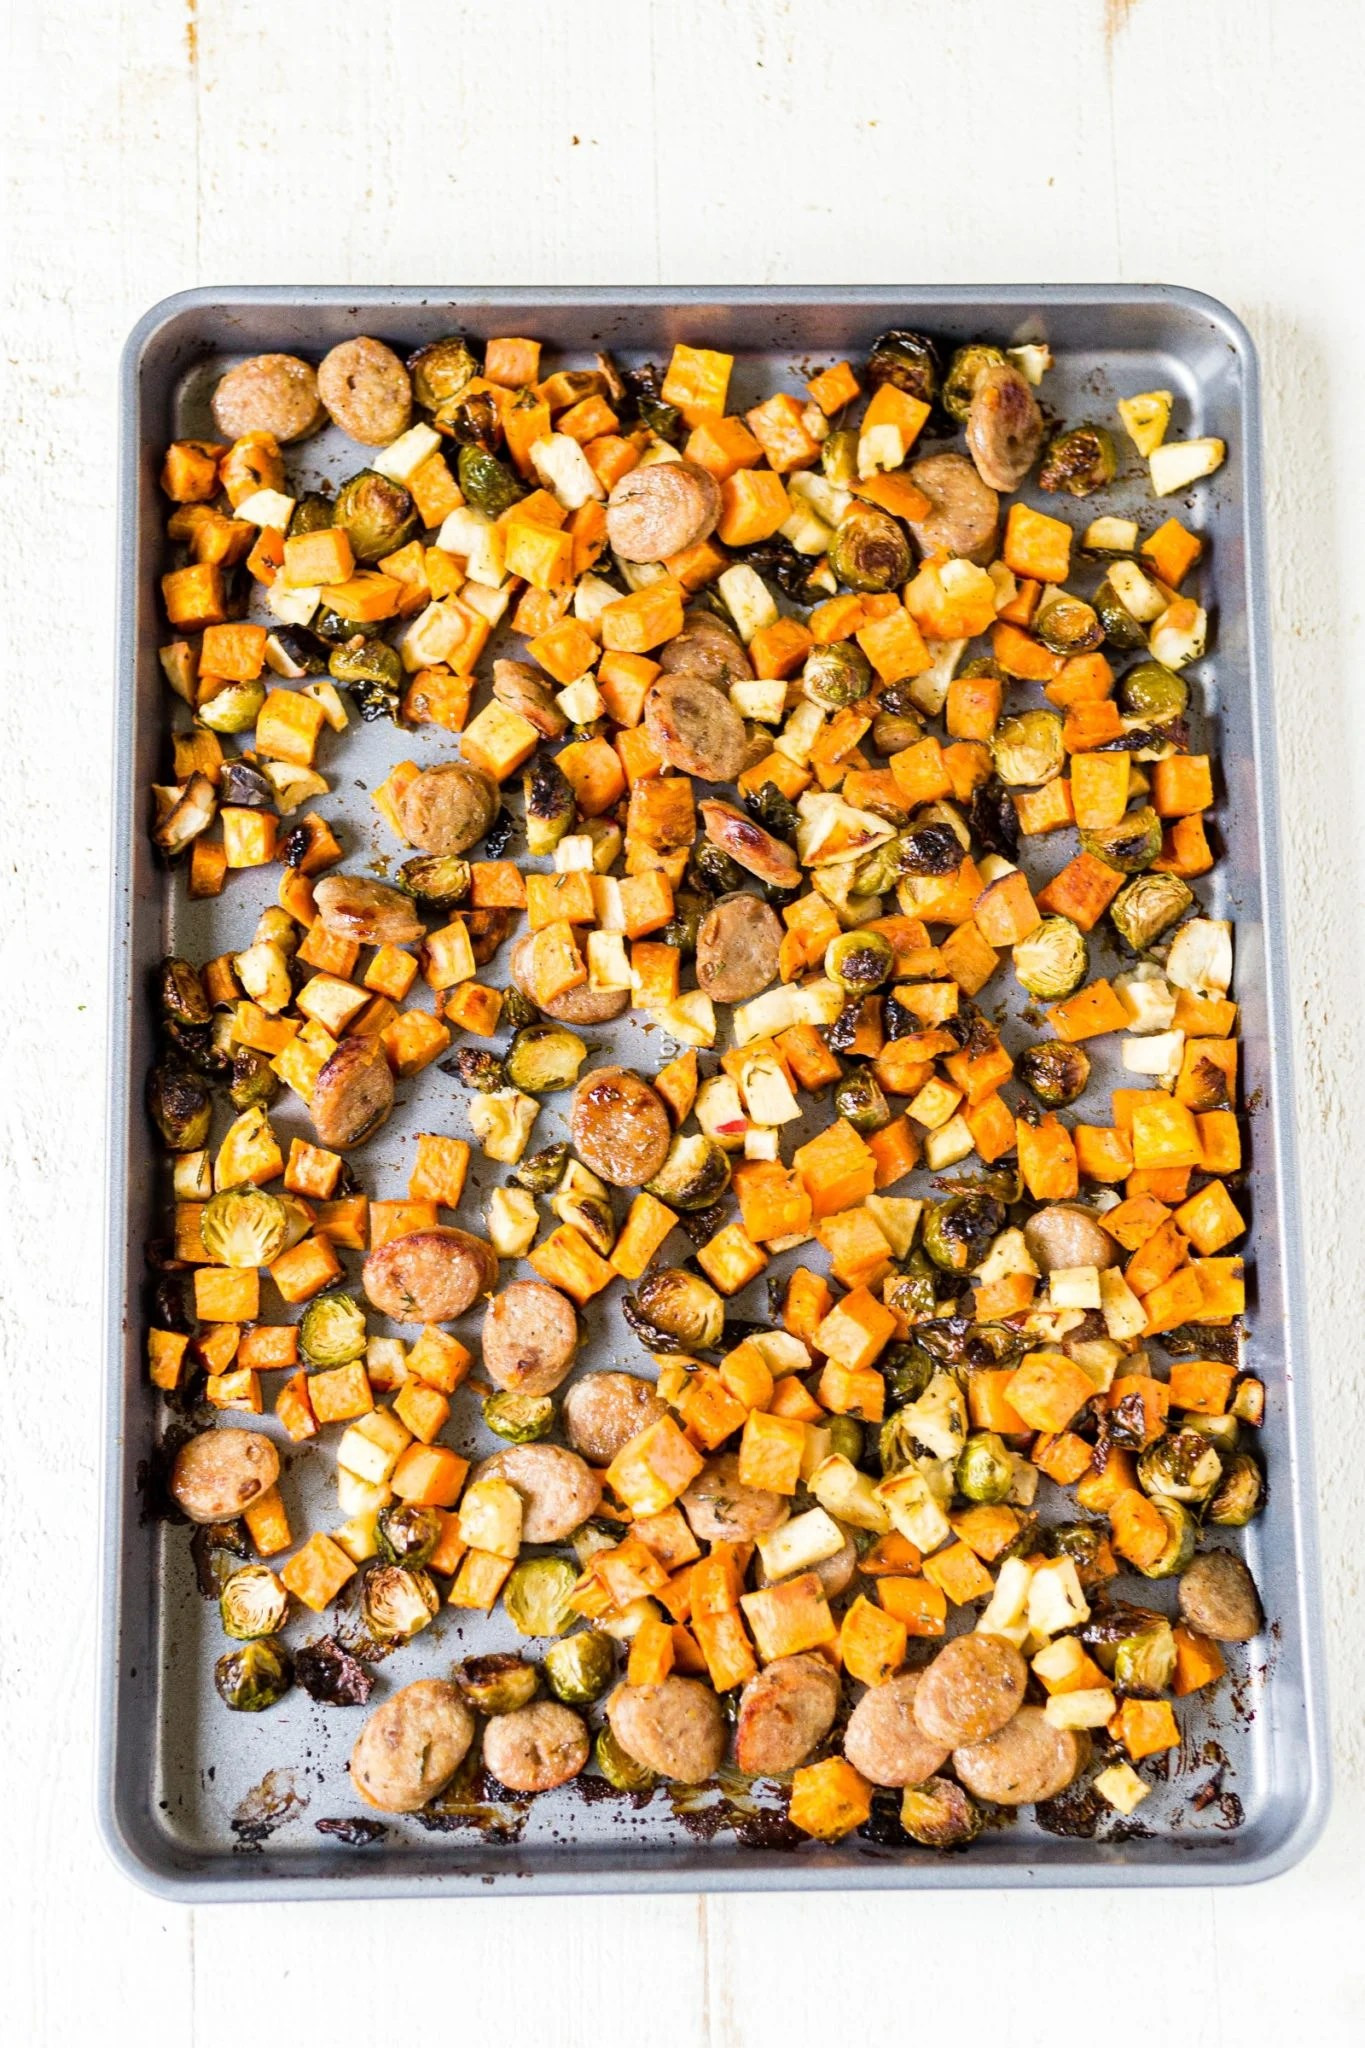 sheet pan filled with roasted sweet potatoes, apples, brussels sprouts and chicken sausage